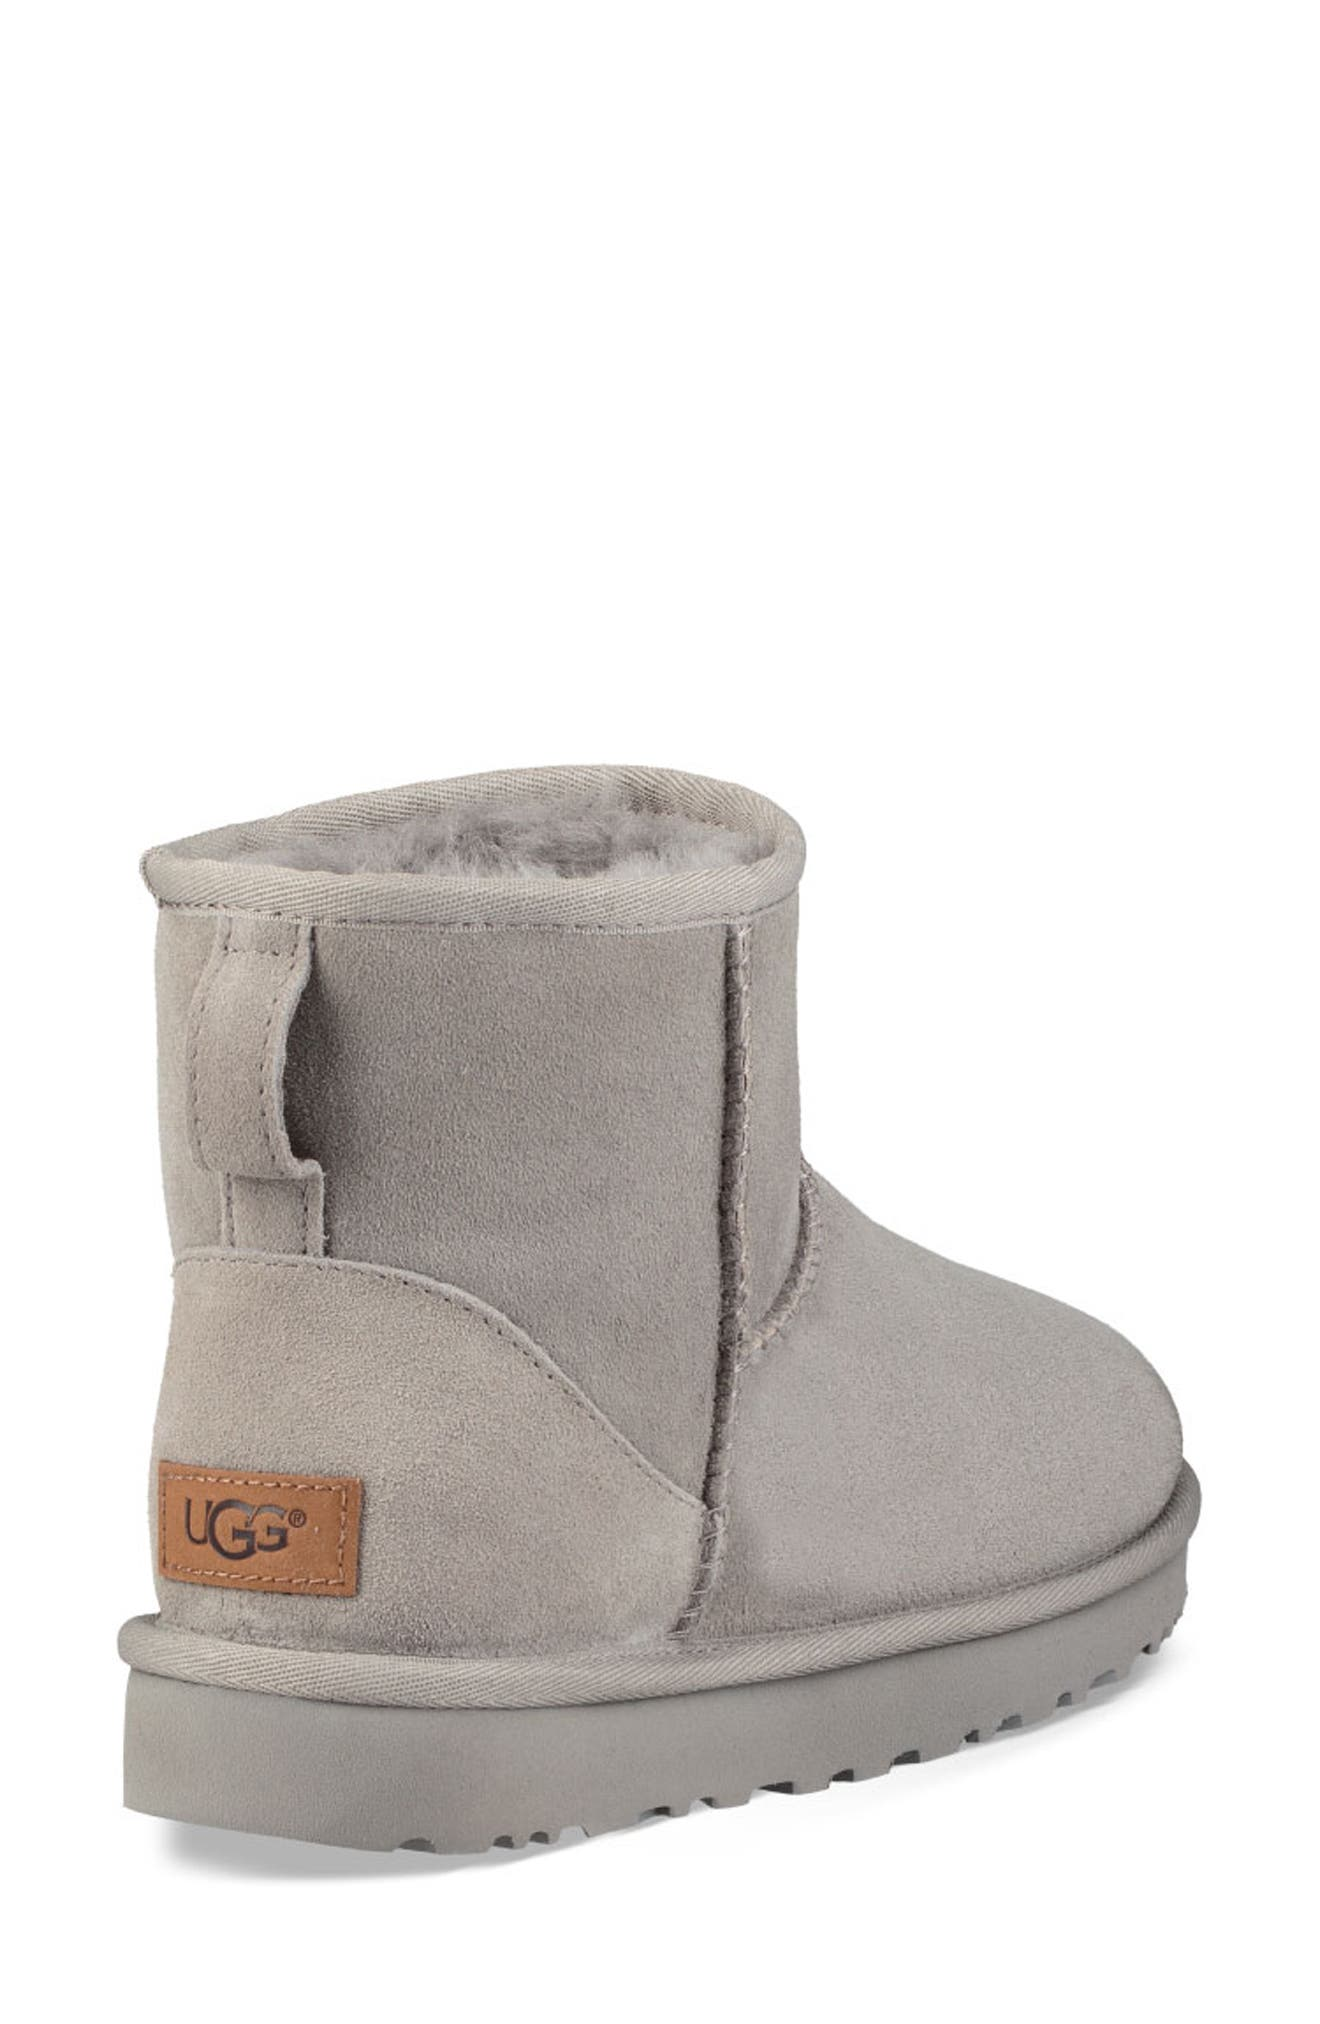 'Classic Mini II' Genuine Shearling Lined Boot,                             Alternate thumbnail 2, color,                             SEAL SUEDE